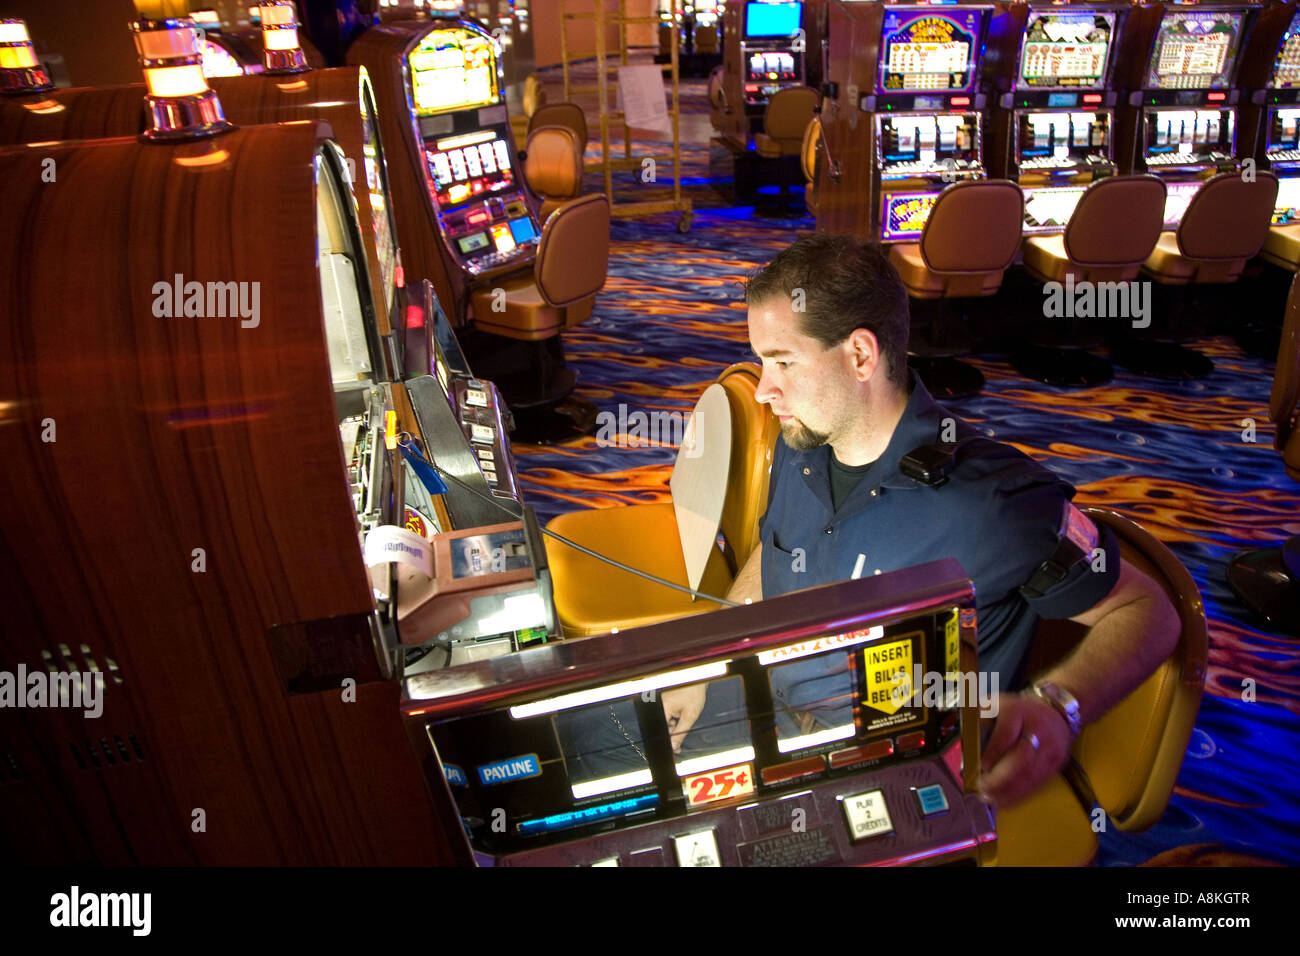 2/10/ · The average salary for a Slot Technician is $ per hour in United States.Learn about salaries, benefits, salary satisfaction and where you could earn the most.